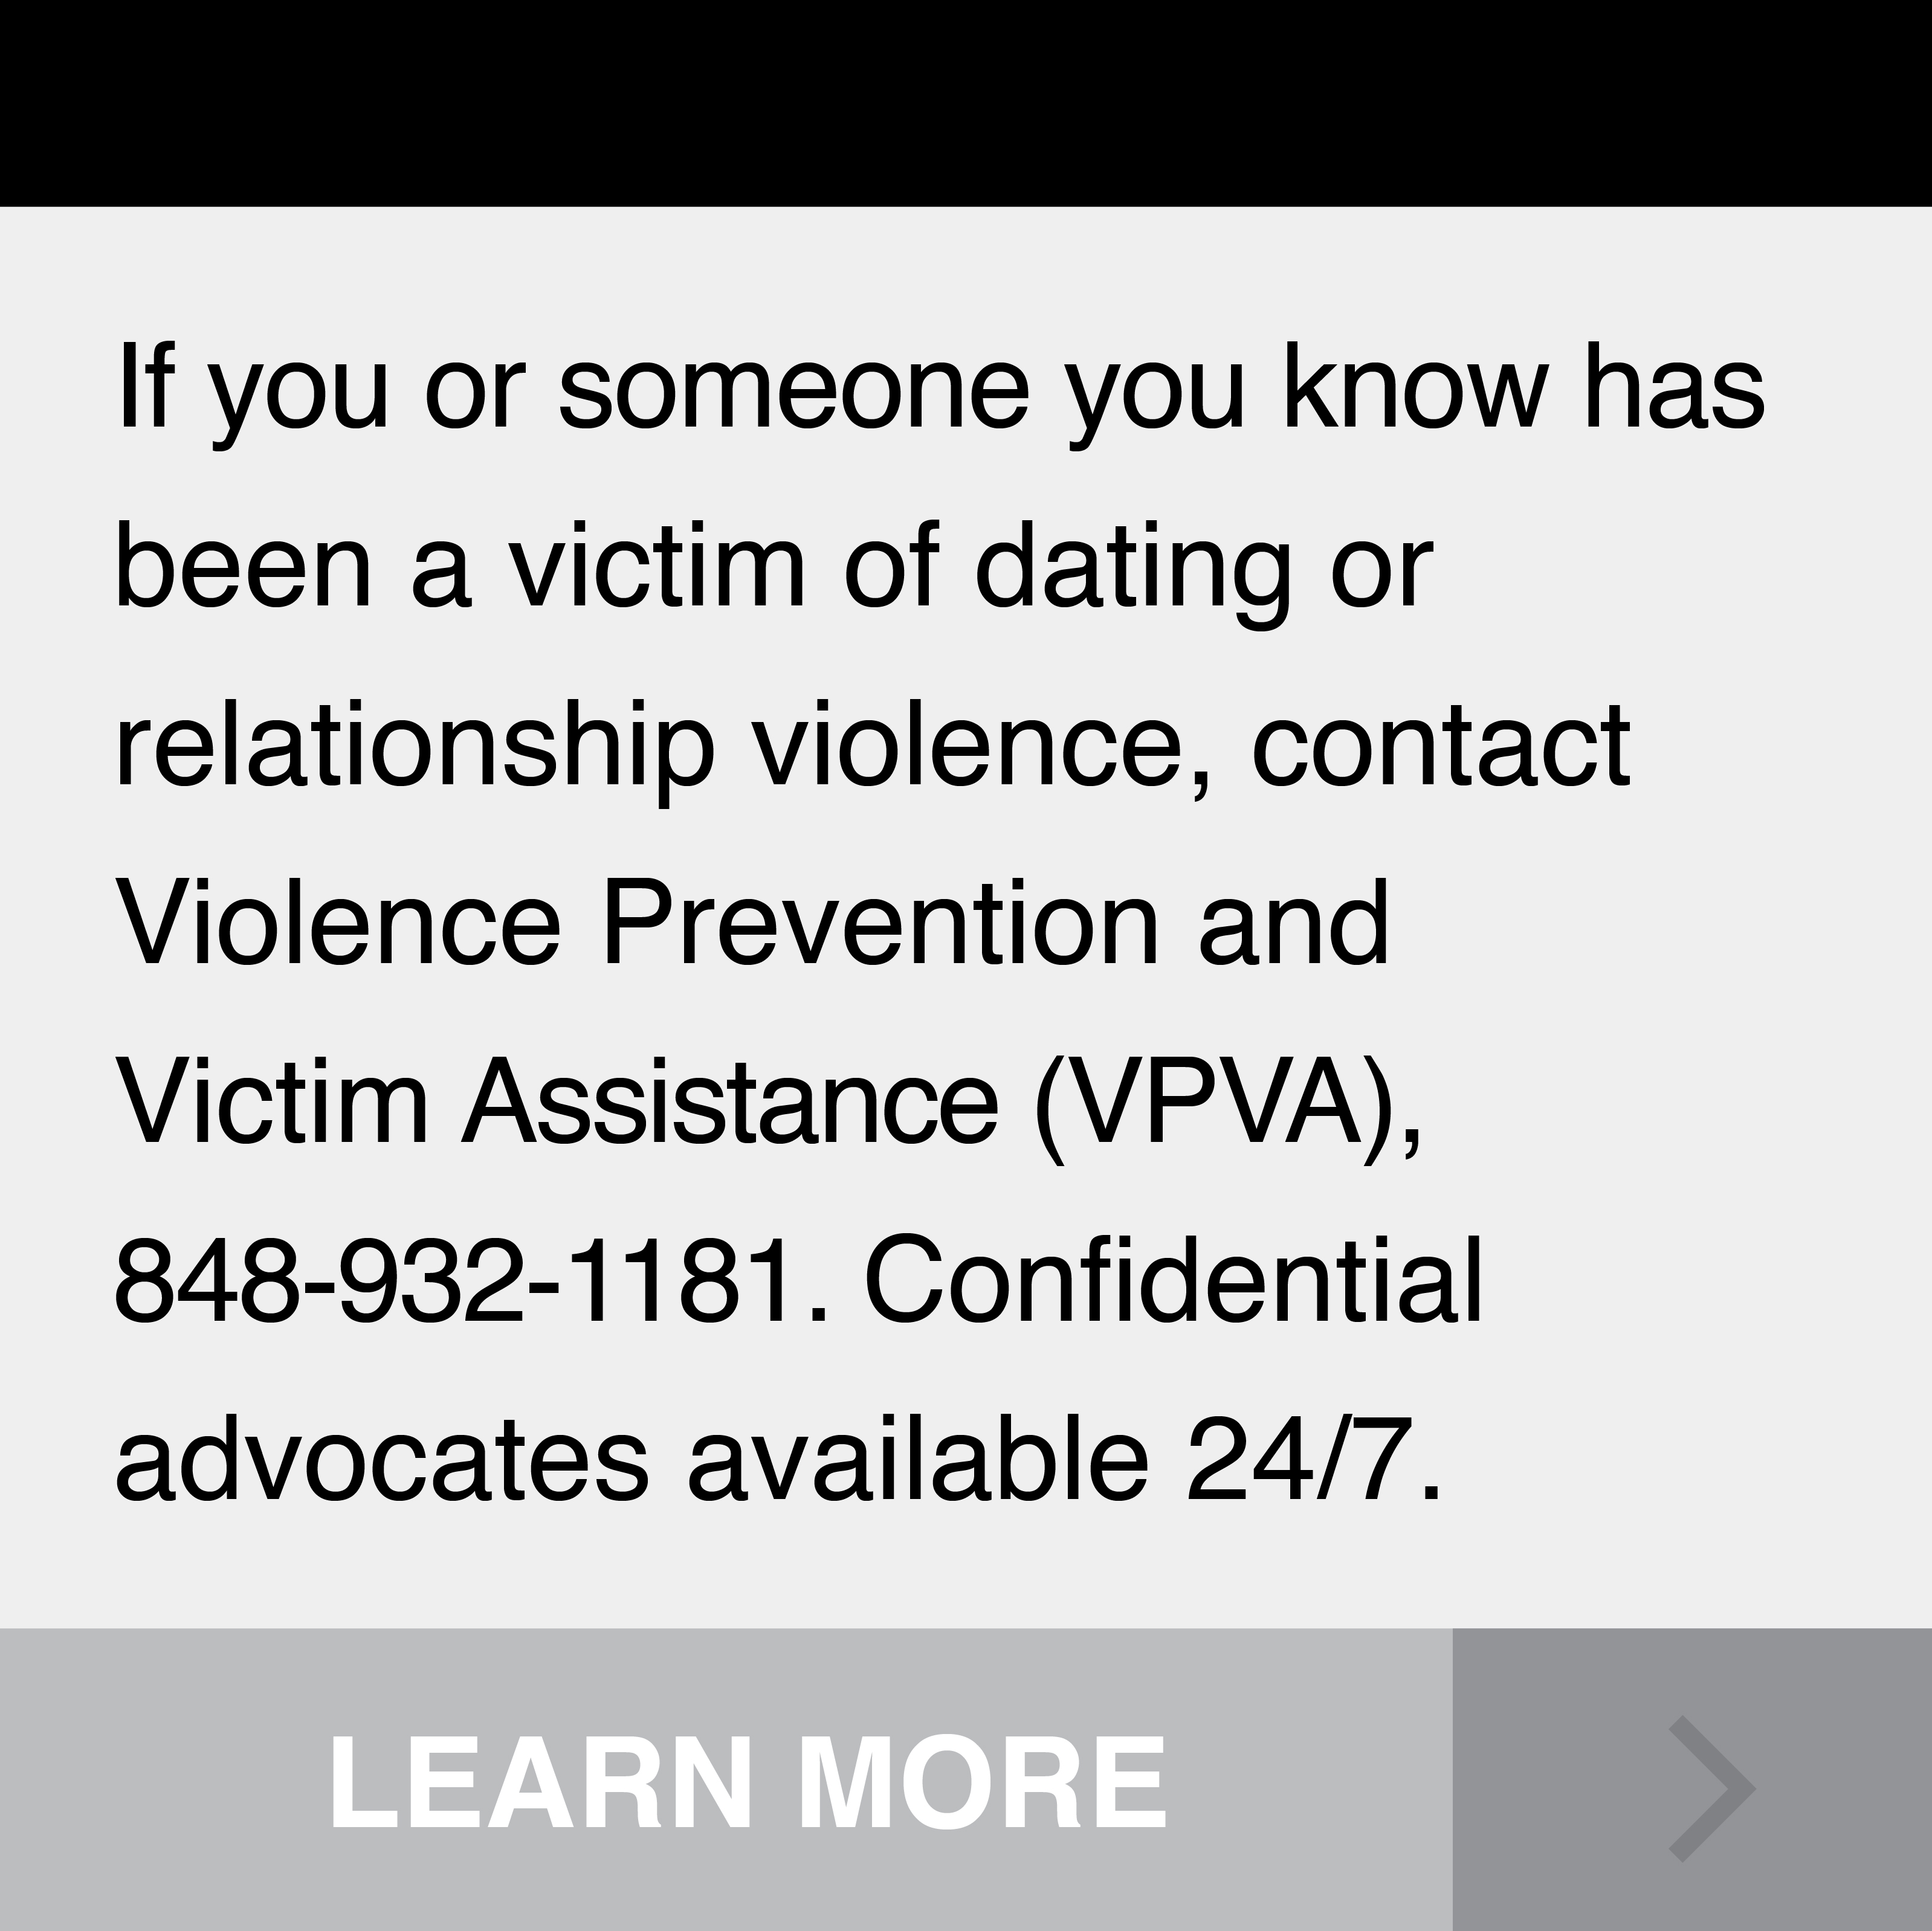 If you or someone you know has been a victim of dating or relationship violence, contact Violence Prevention and Vicitim Assistance (VPVA), 848-932-1181. Confidential advocates available 24/7.